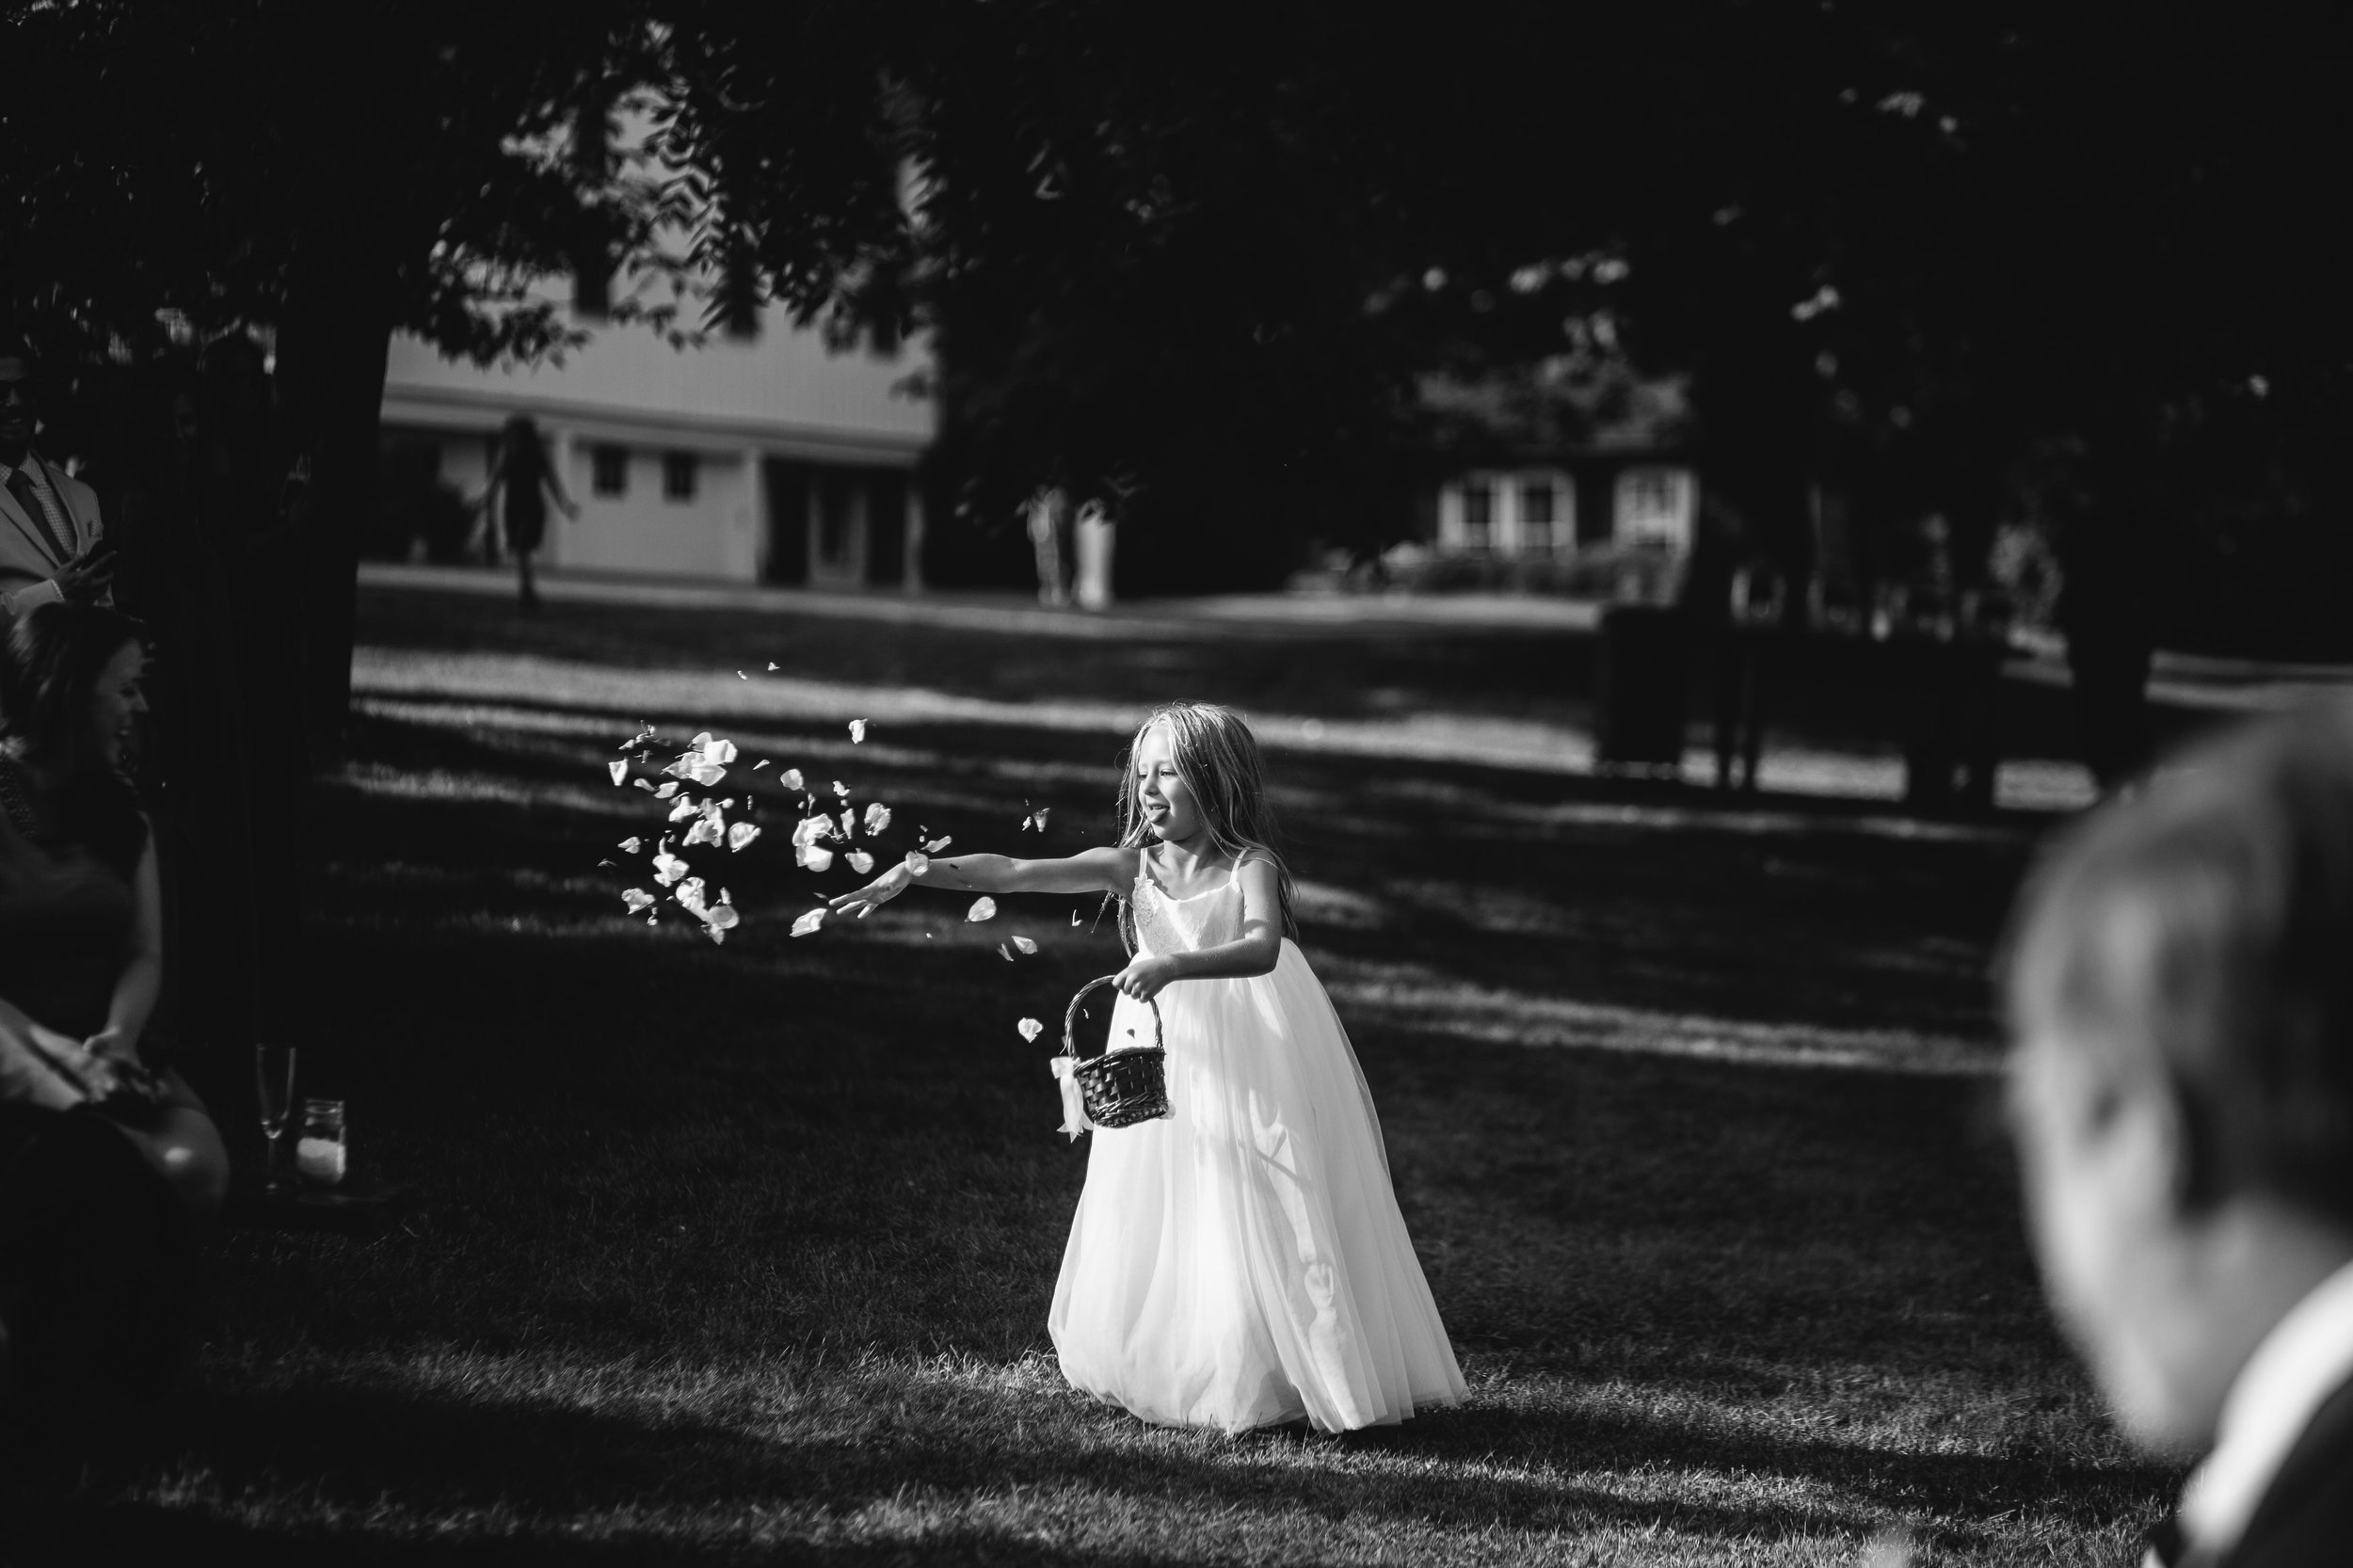 hudson-valley-farm-weddings-pioneer-farm-weddings-warwick-ny-flower-girl-black-and-white.jpg